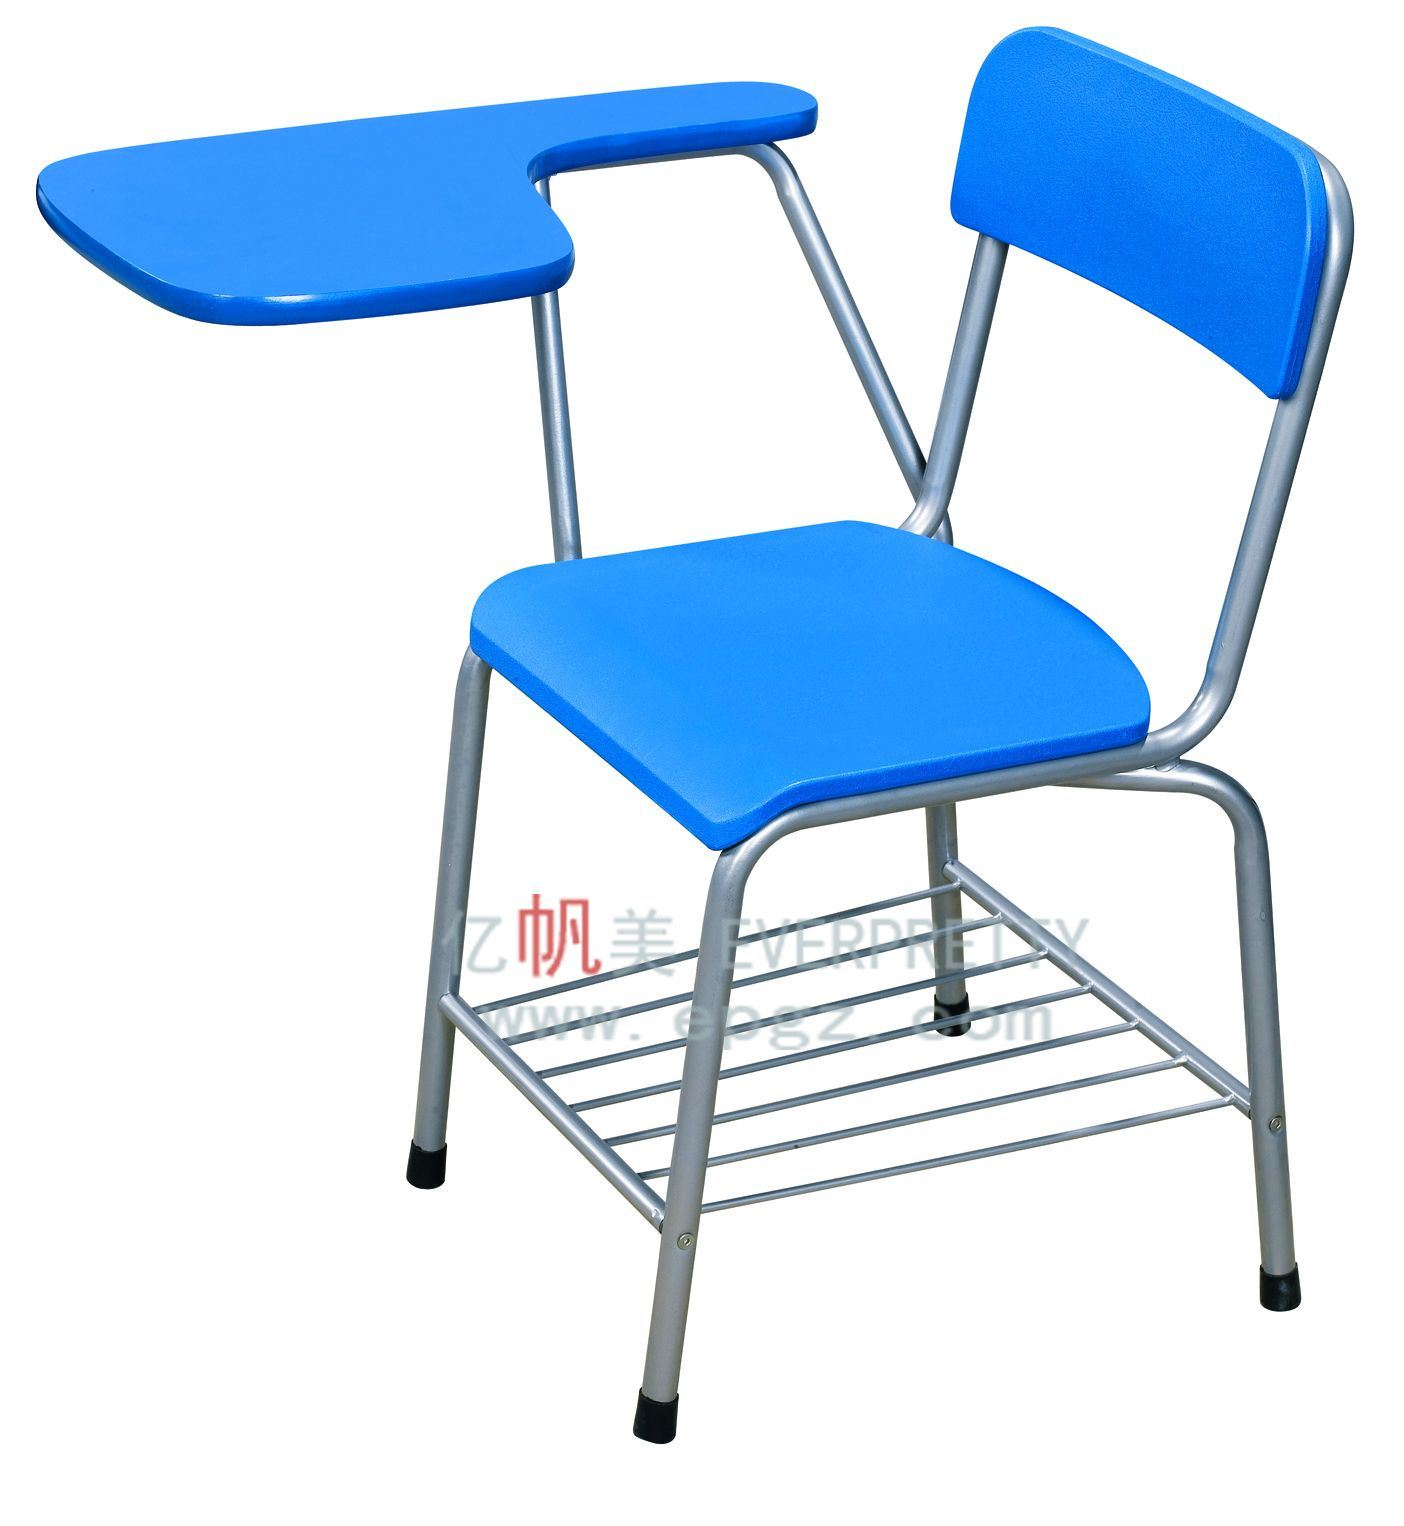 School Furniture Classroom Wooden Sketching Chairs With Folded Writing Pad